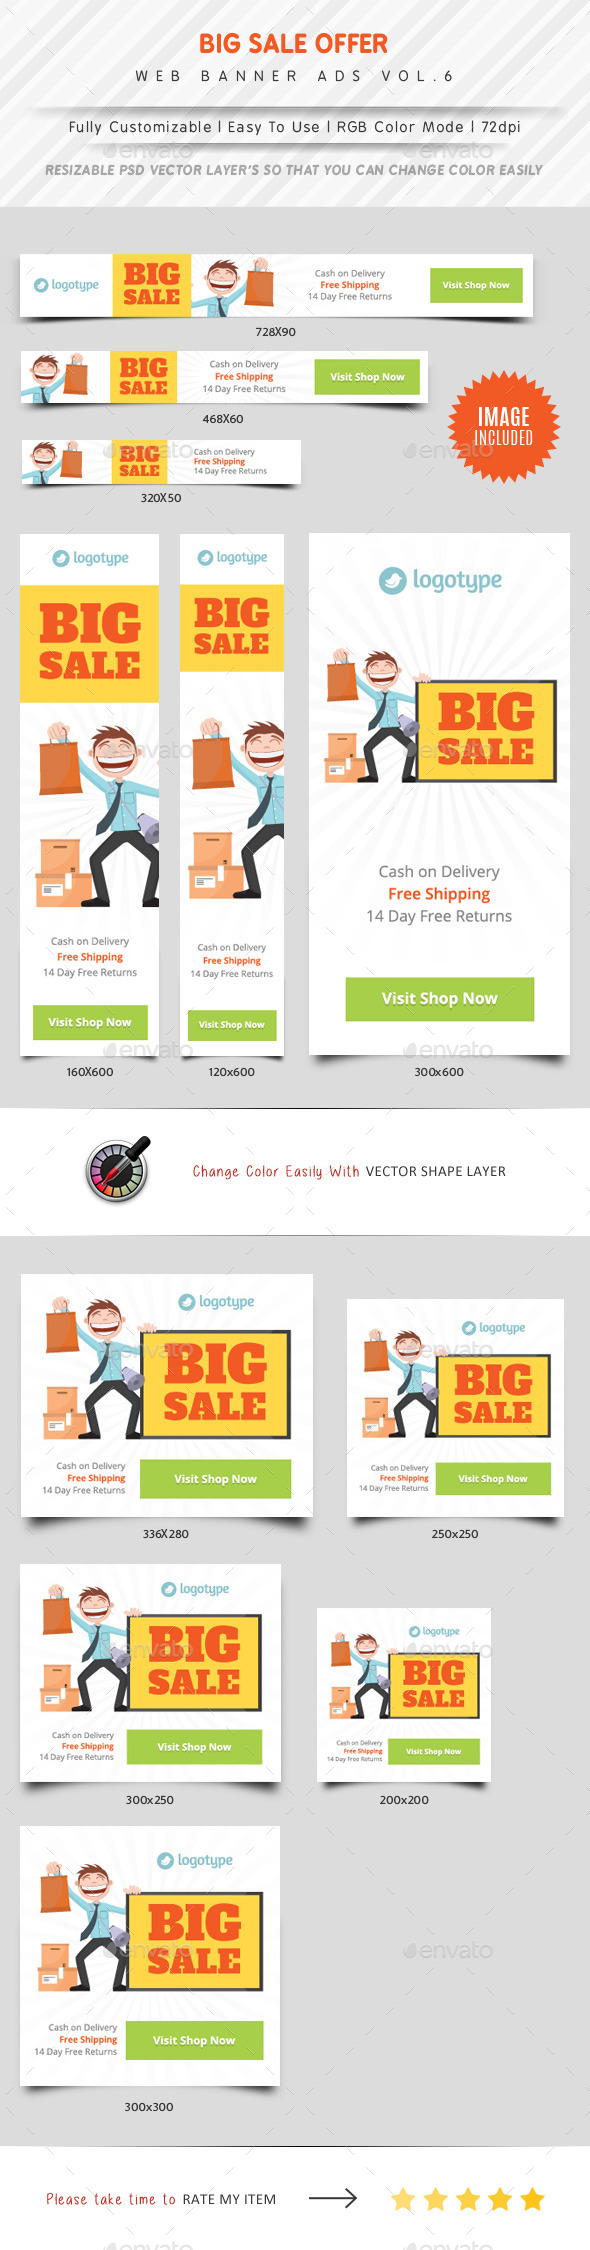 Big Sale Web Banner Ads Vol.6